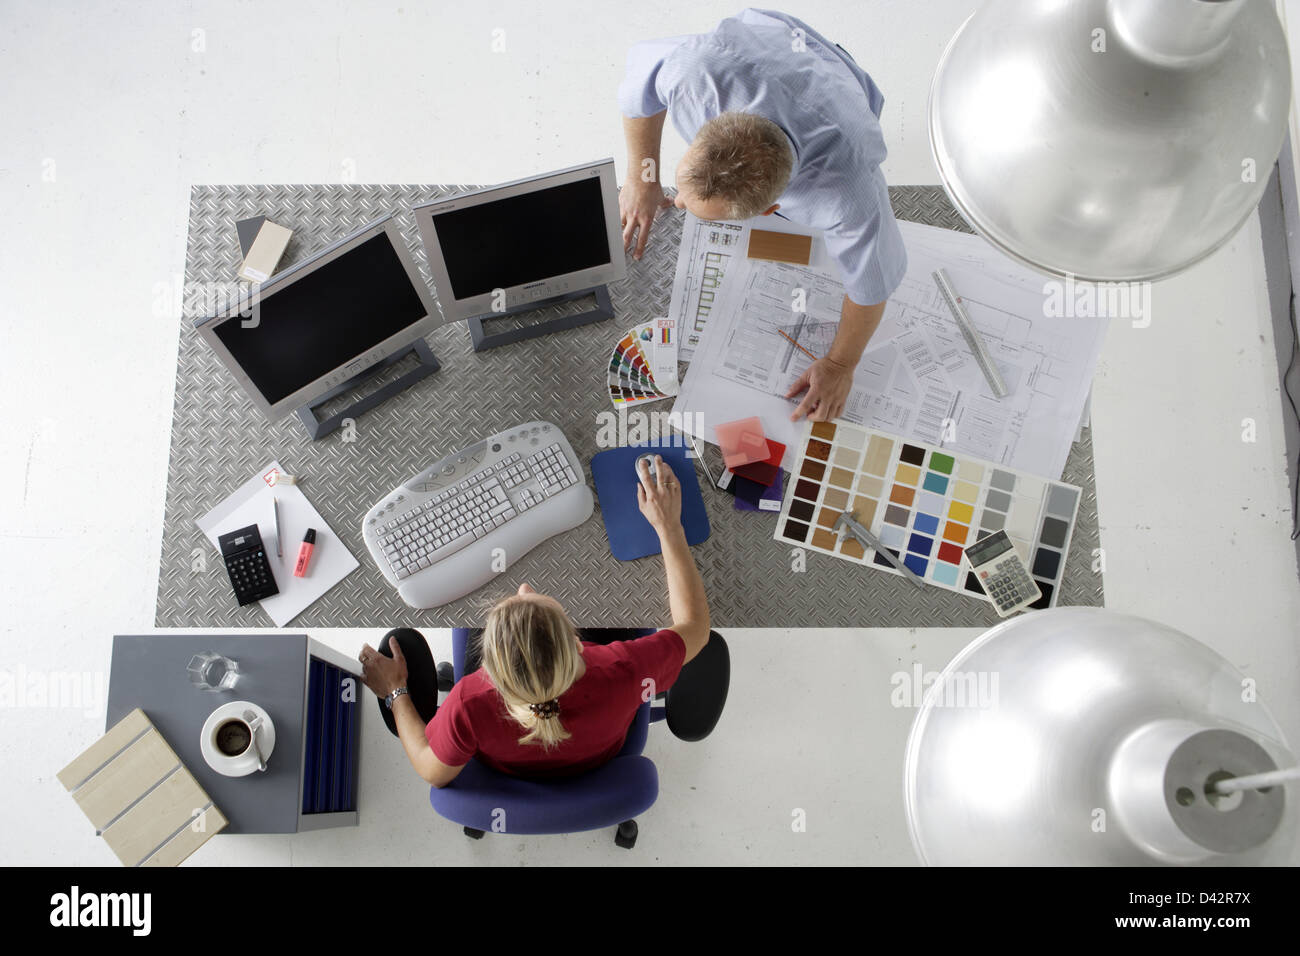 Freiburg, Germany, design planning in an office Stock Photo